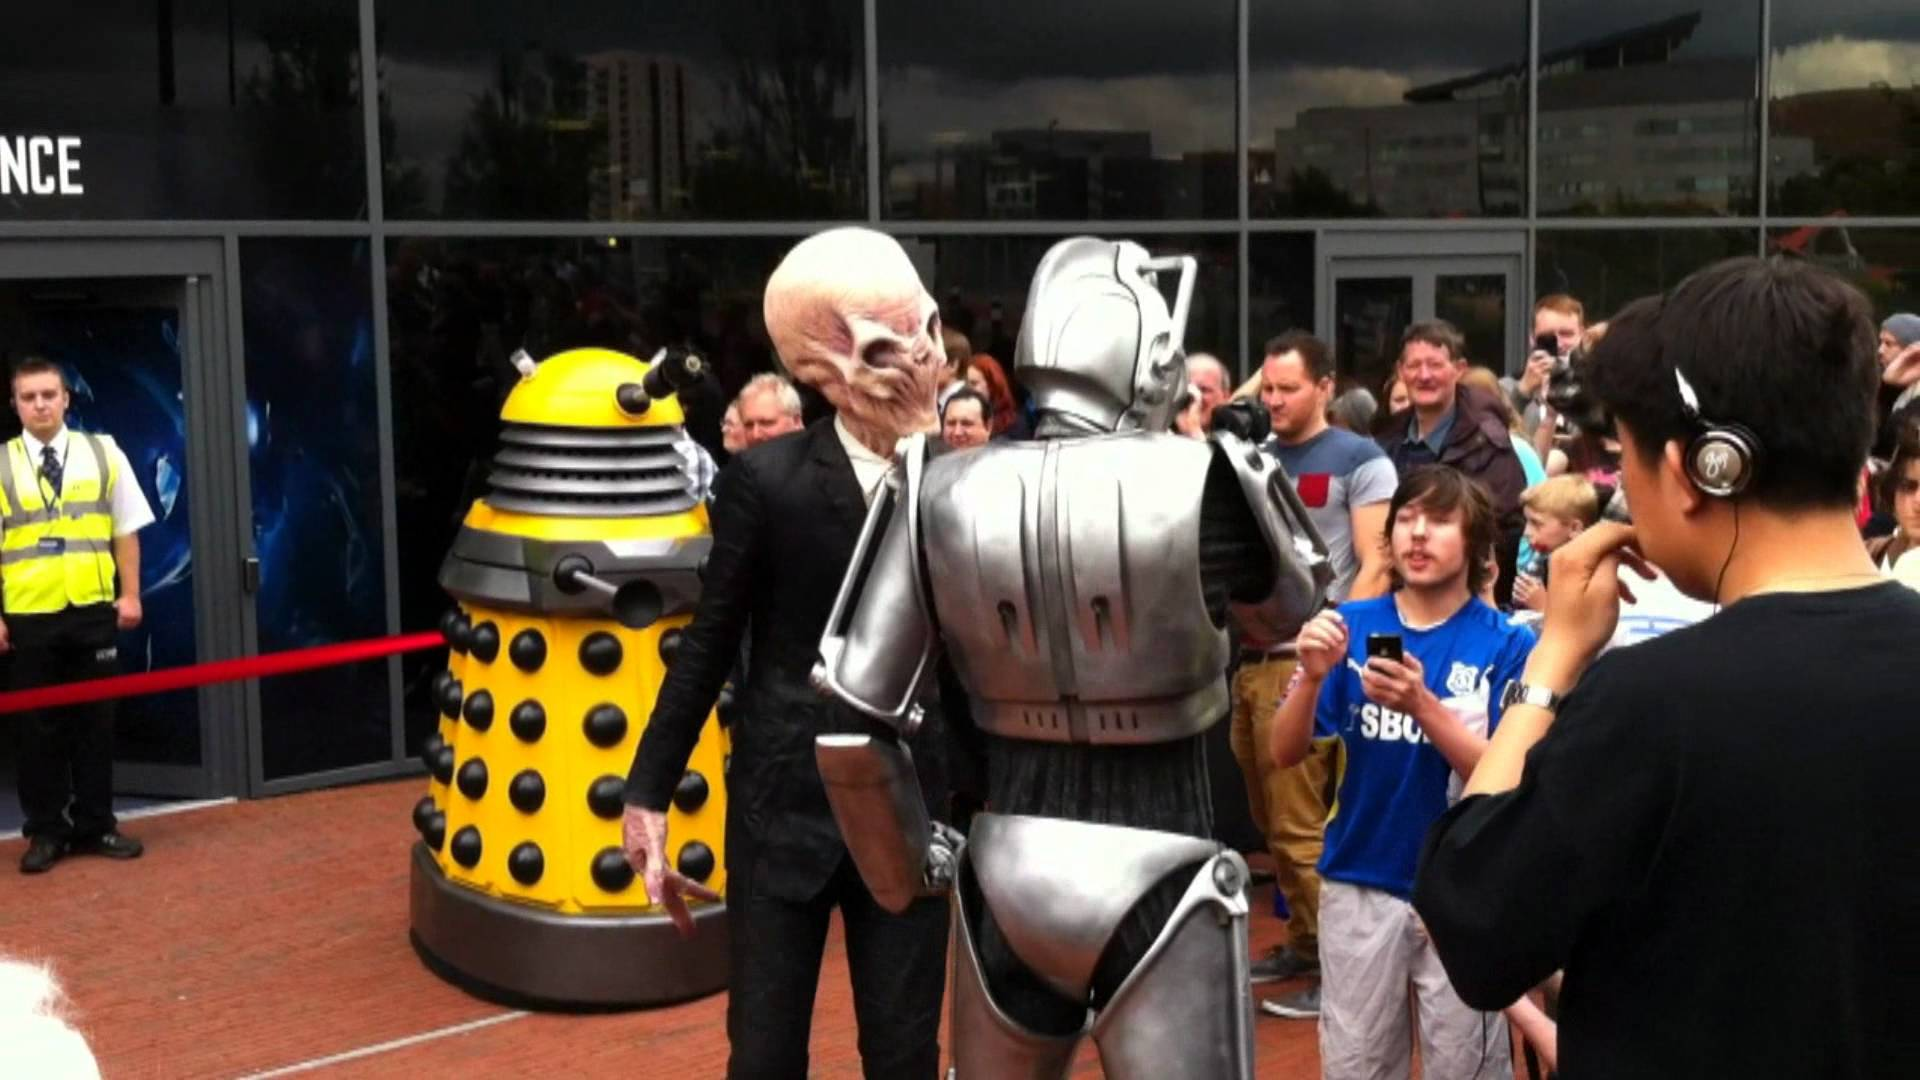 Doctor Who Experience Cardiff, The Doctor Who Experience Opening Cardiff Bay - YouTube